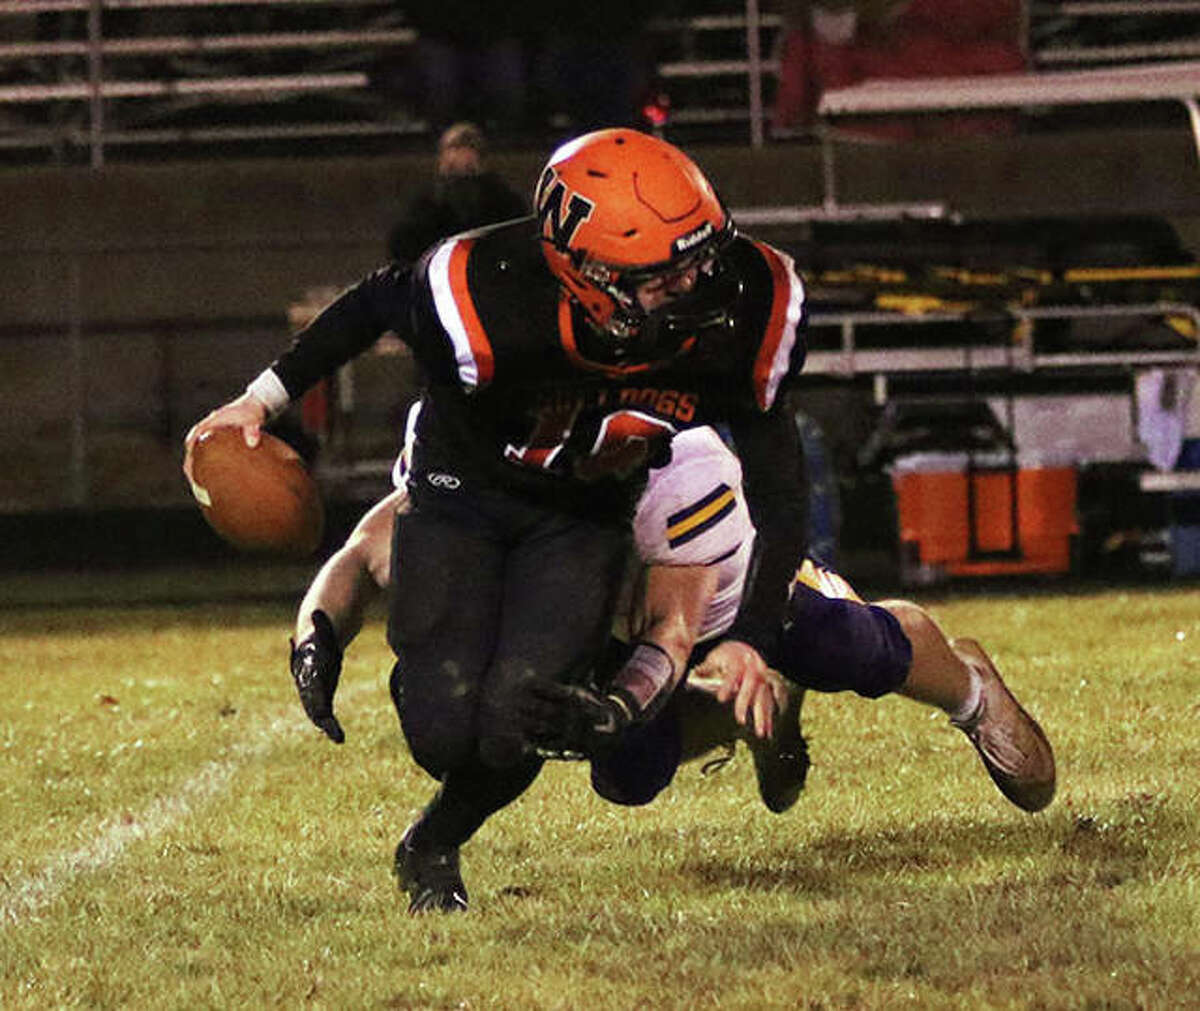 Waterloo QB Eric Brown (front) cannot escape the rush from CM defensive lineman Cole Stimac, who takes Brown down for a sack on third down to force Bulldogs punt in the third quarter Friday night in Waterloo.